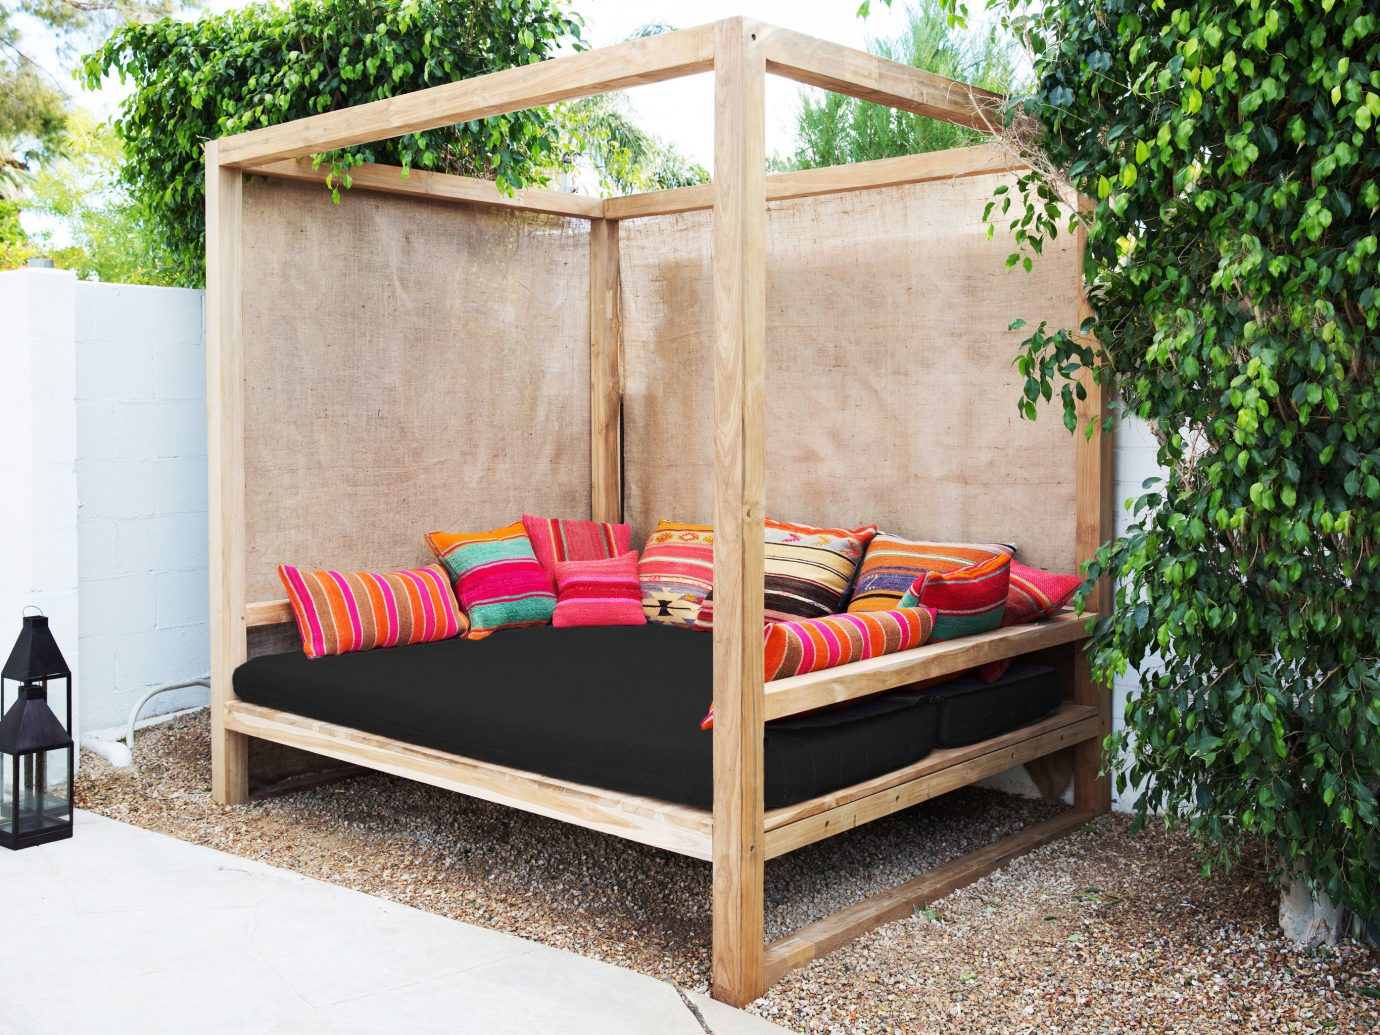 Hotels tree ground outdoor furniture bed cottage outdoor structure backyard bed frame studio couch outdoor play equipment stone